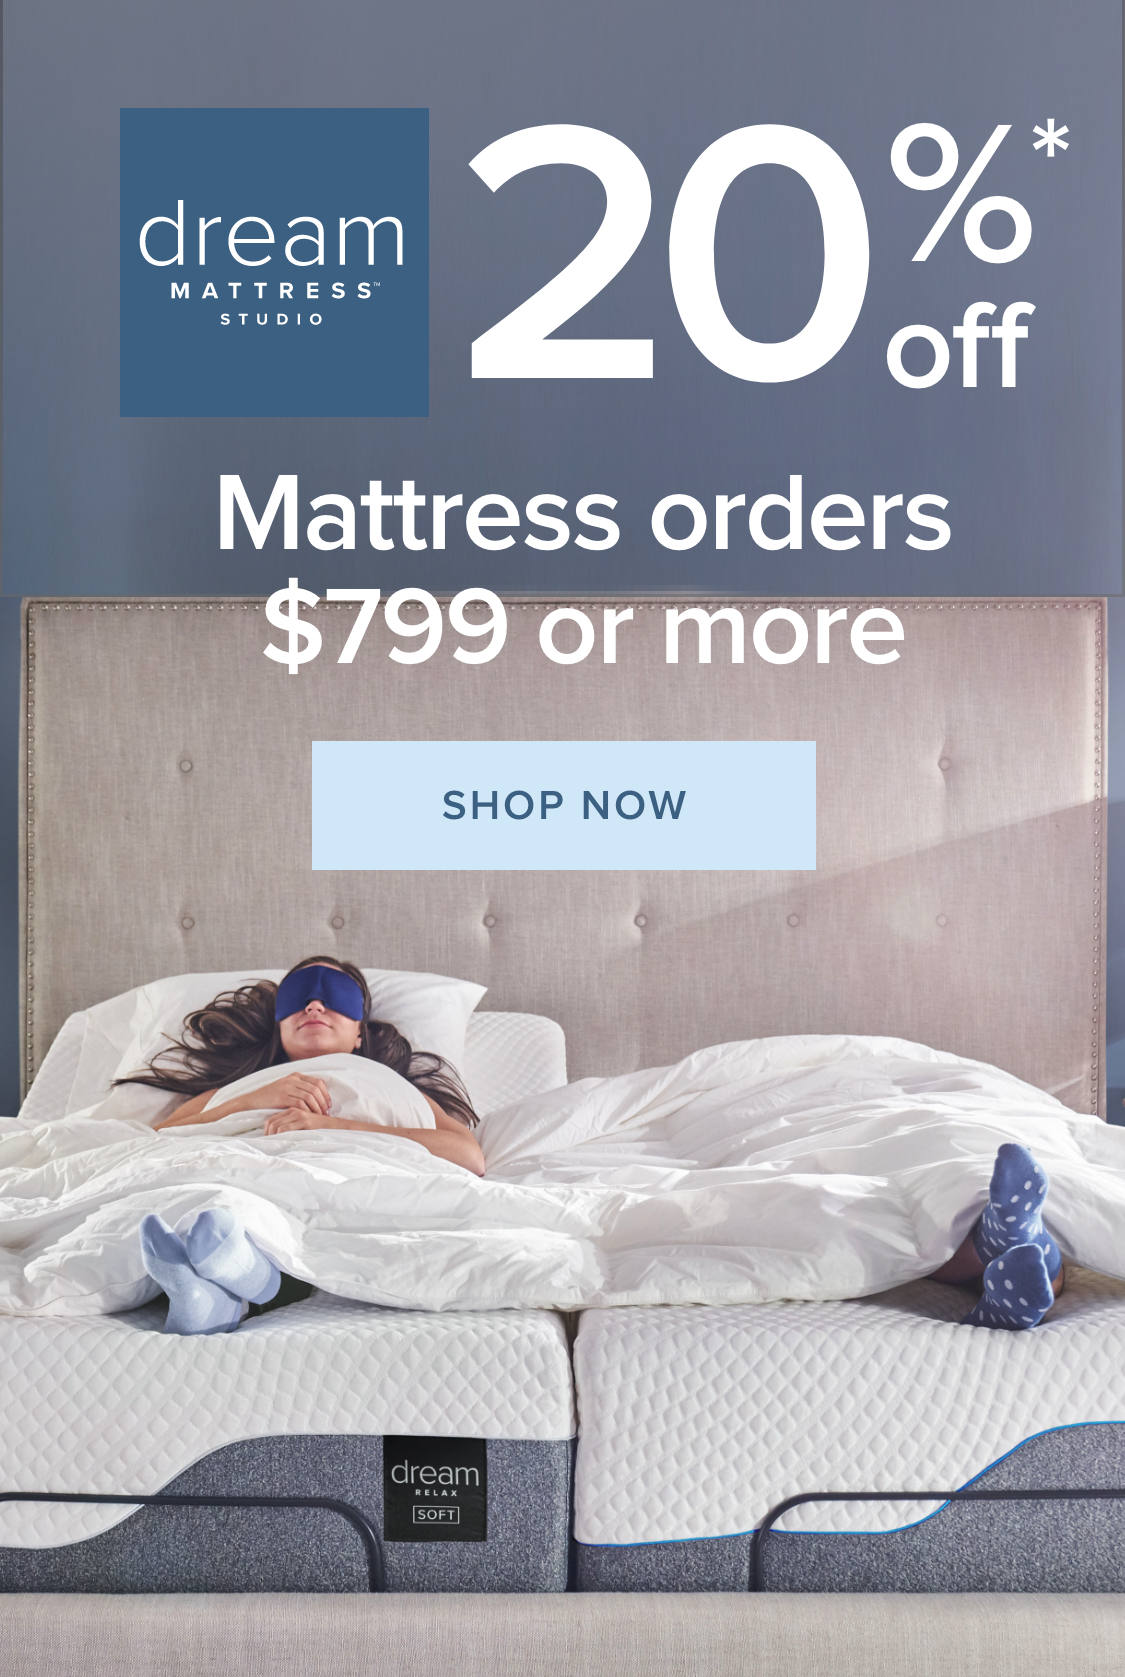 There's a Dream Mattress for every body. Shop the Dream Mattress Studio - 20% Off Dream Mattresses and Adjustable Bases